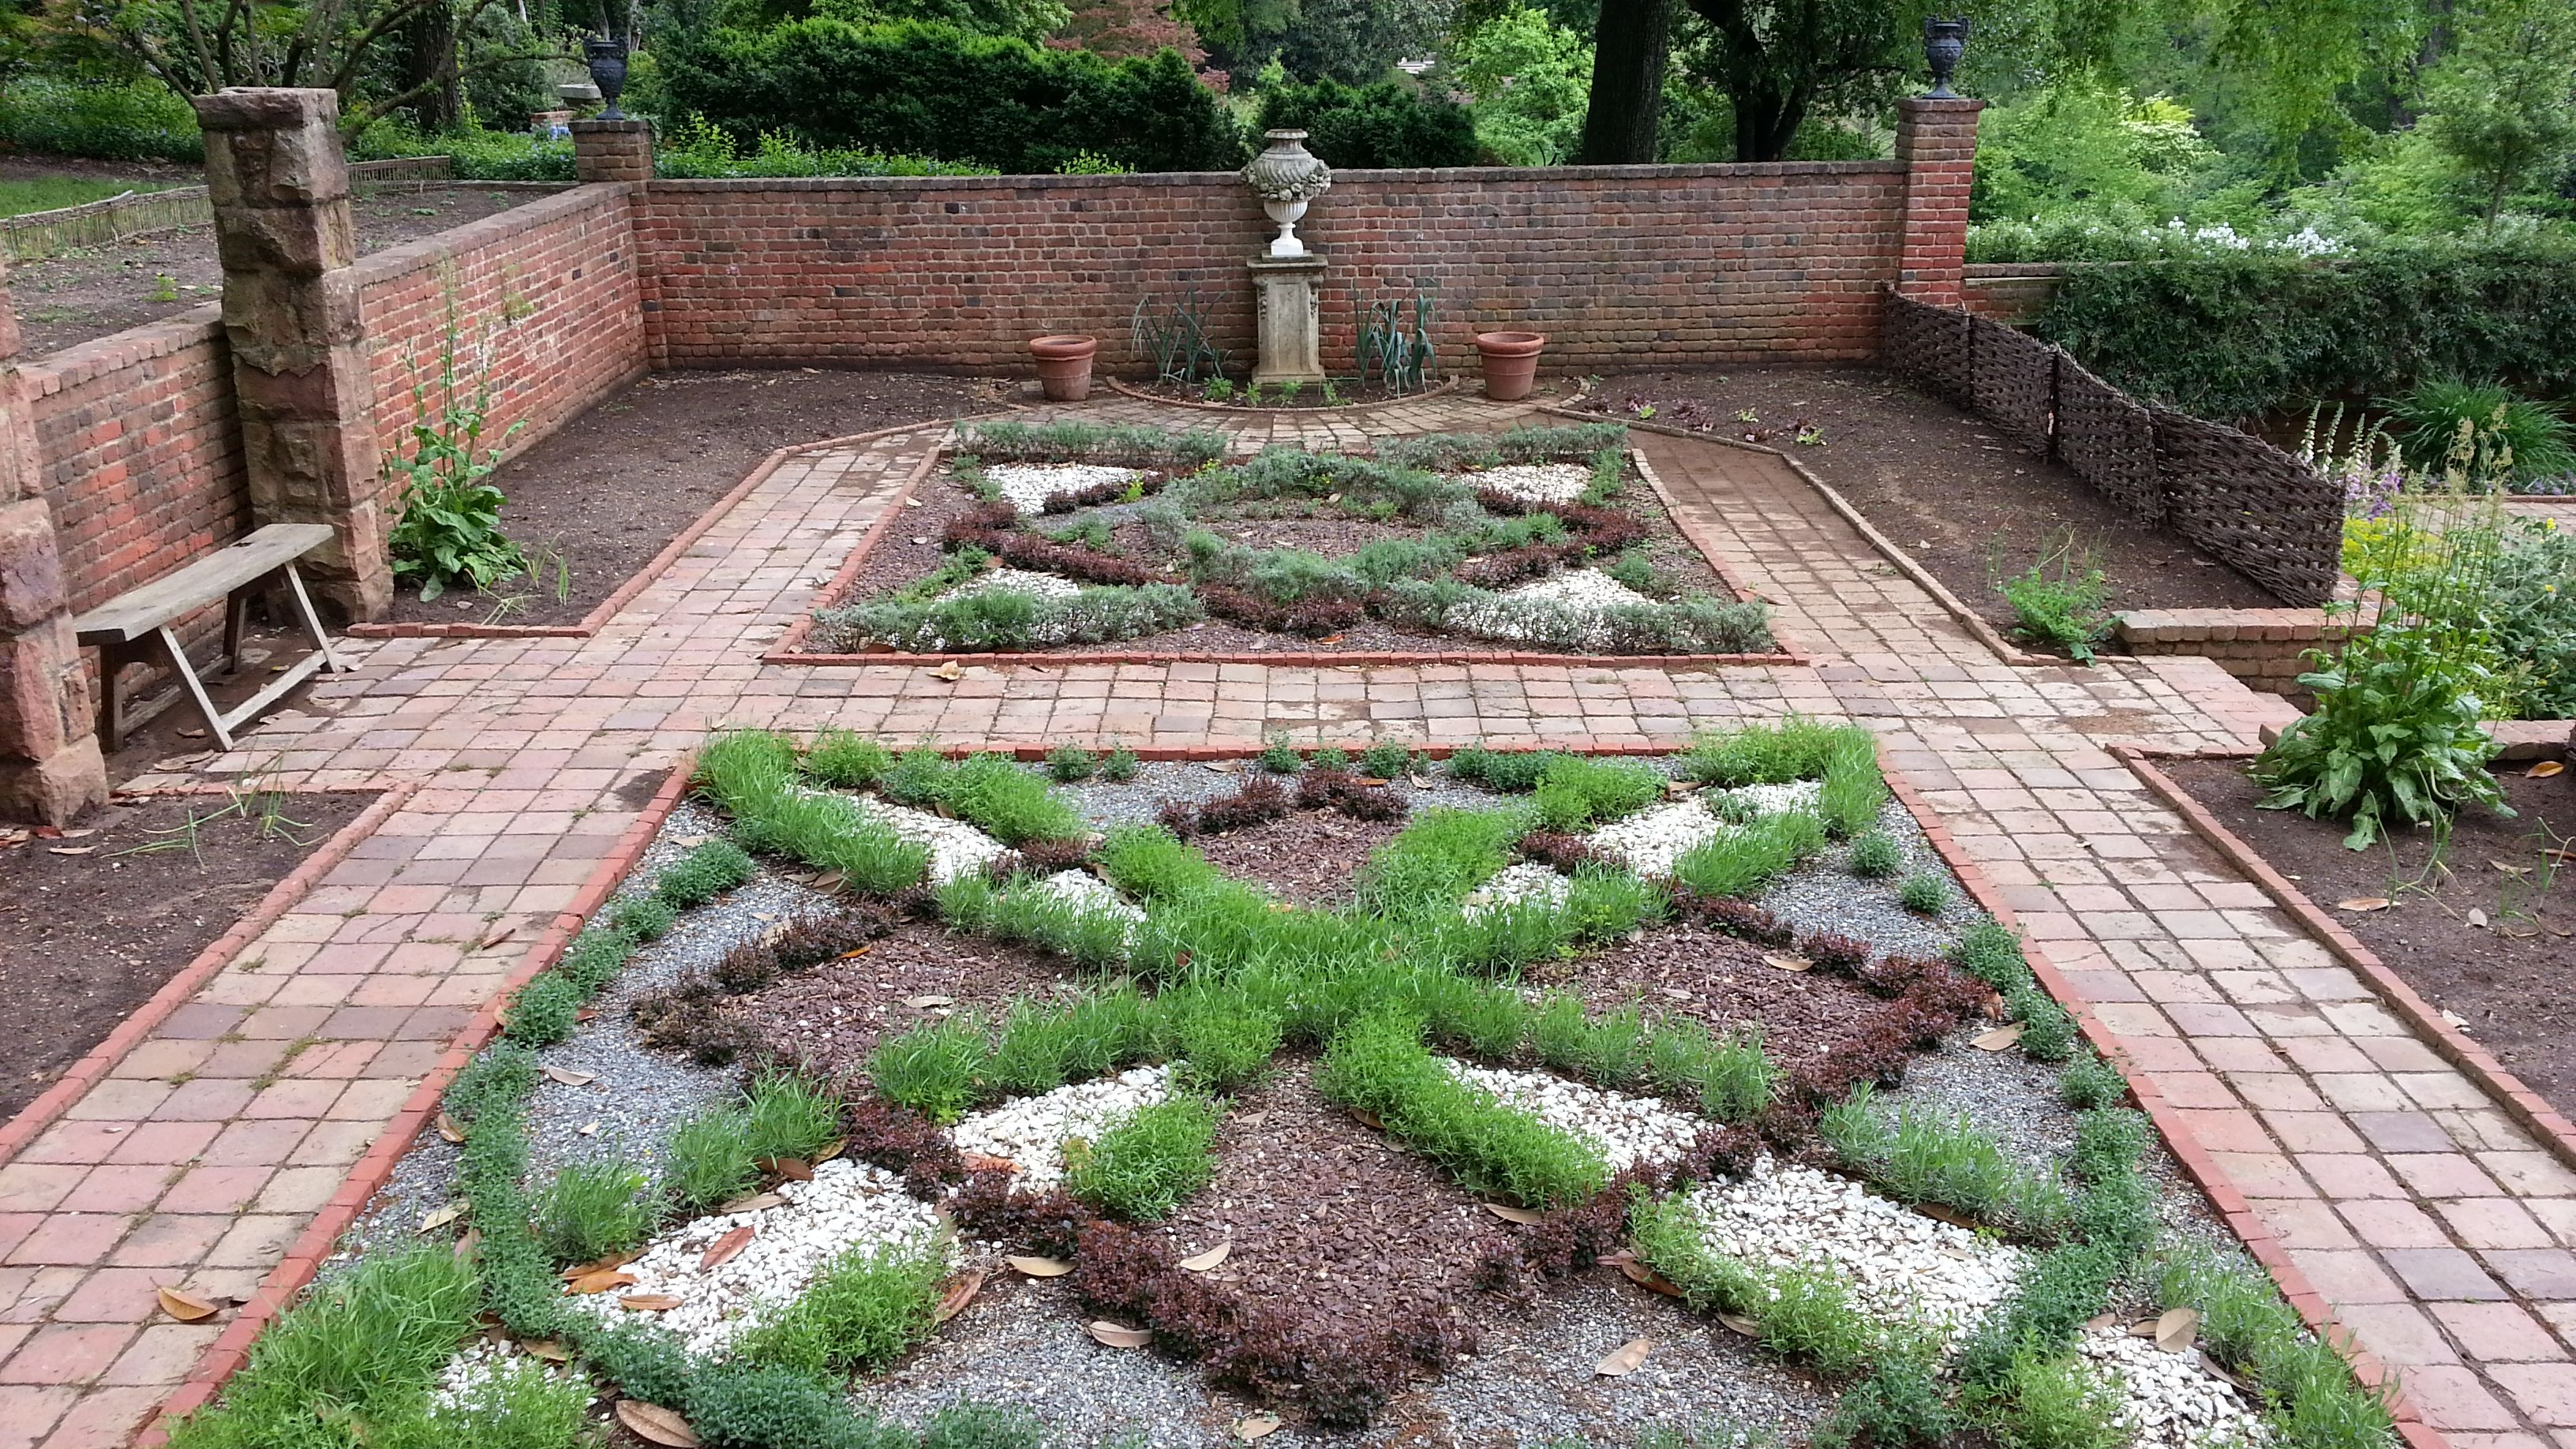 elizabethan knot garden agecroft hall windsor farms richmond